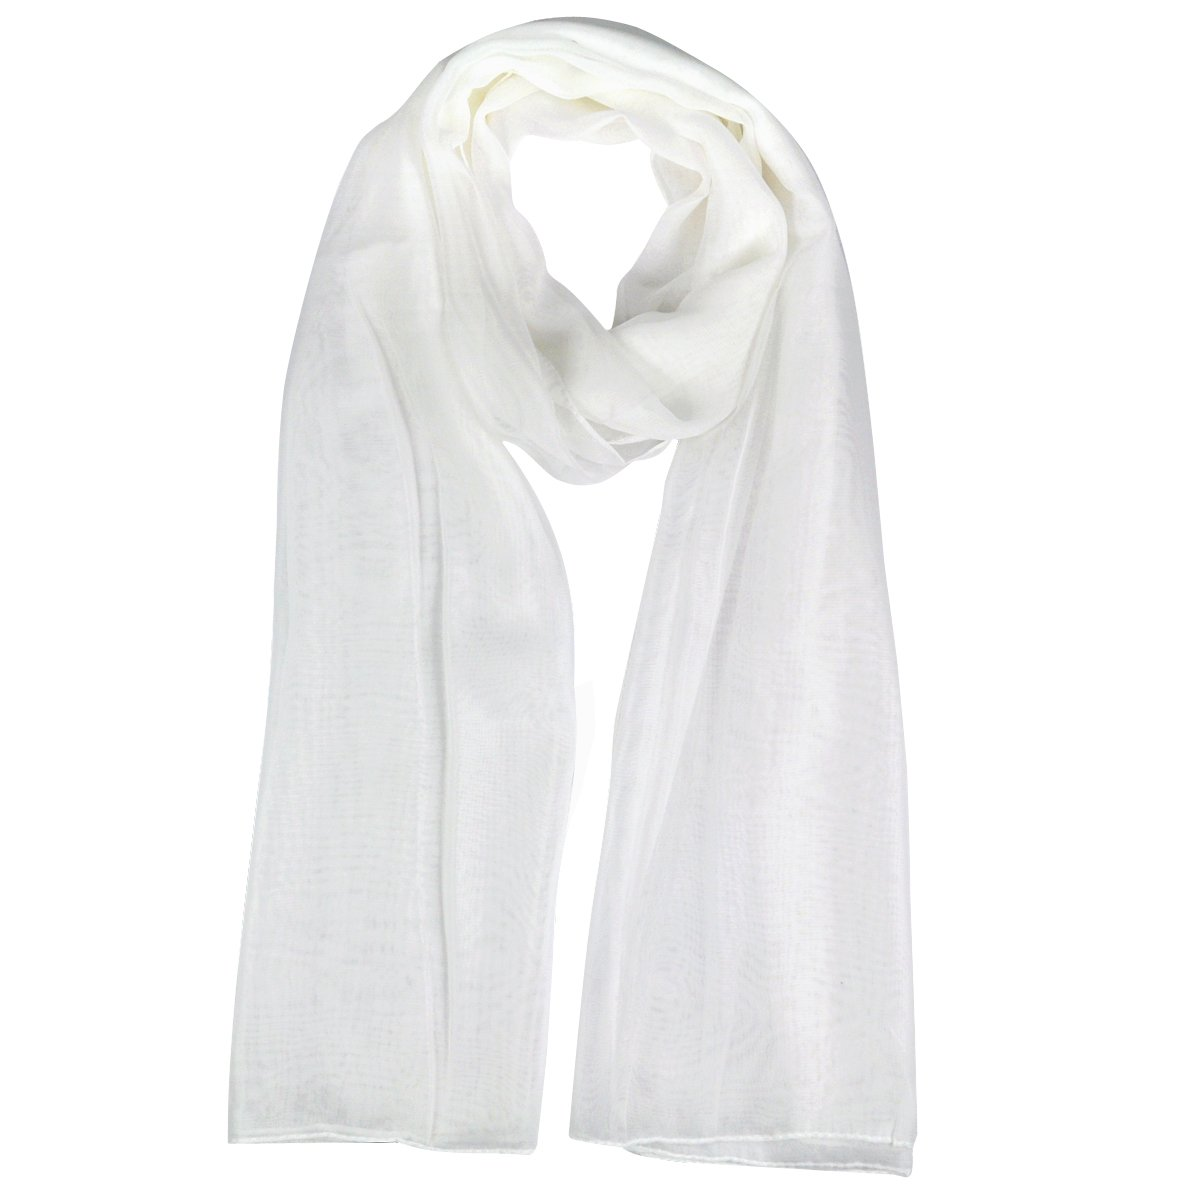 You searched for: white scarf women! Etsy is the home to thousands of handmade, vintage, and one-of-a-kind products and gifts related to your search. No matter what you're looking for or where you are in the world, our global marketplace of sellers can help you find unique and affordable options. Let's get started!